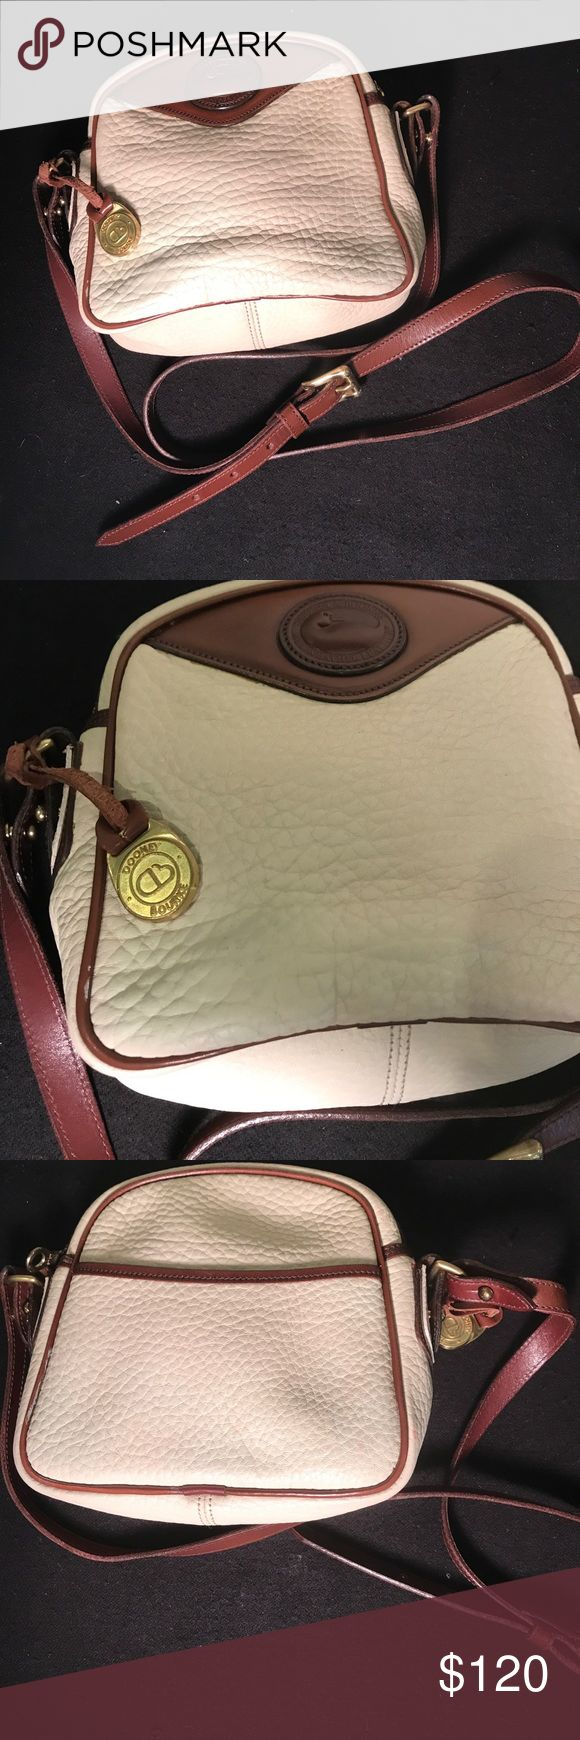 """1982 Vintage Dooney & Bourke crossbody This is an All Weather Leather vintage Dooney & Bourke crossbody. Purse is vintage and in EUC. It has the blue and red cloth tag that says Dooney & Bourke and Made in USA. The fob is the backwards D & a B. Date code reads A7 204877 which based on my research means this purse was made in 1982. It is taupe with burnt cedar trim. Measures: 7.5"""" tall, 8"""" wide and 2.5"""" deep. Strap drop is 19.5"""" with the ability to add 4 more inches if adjusted. Interior has…"""